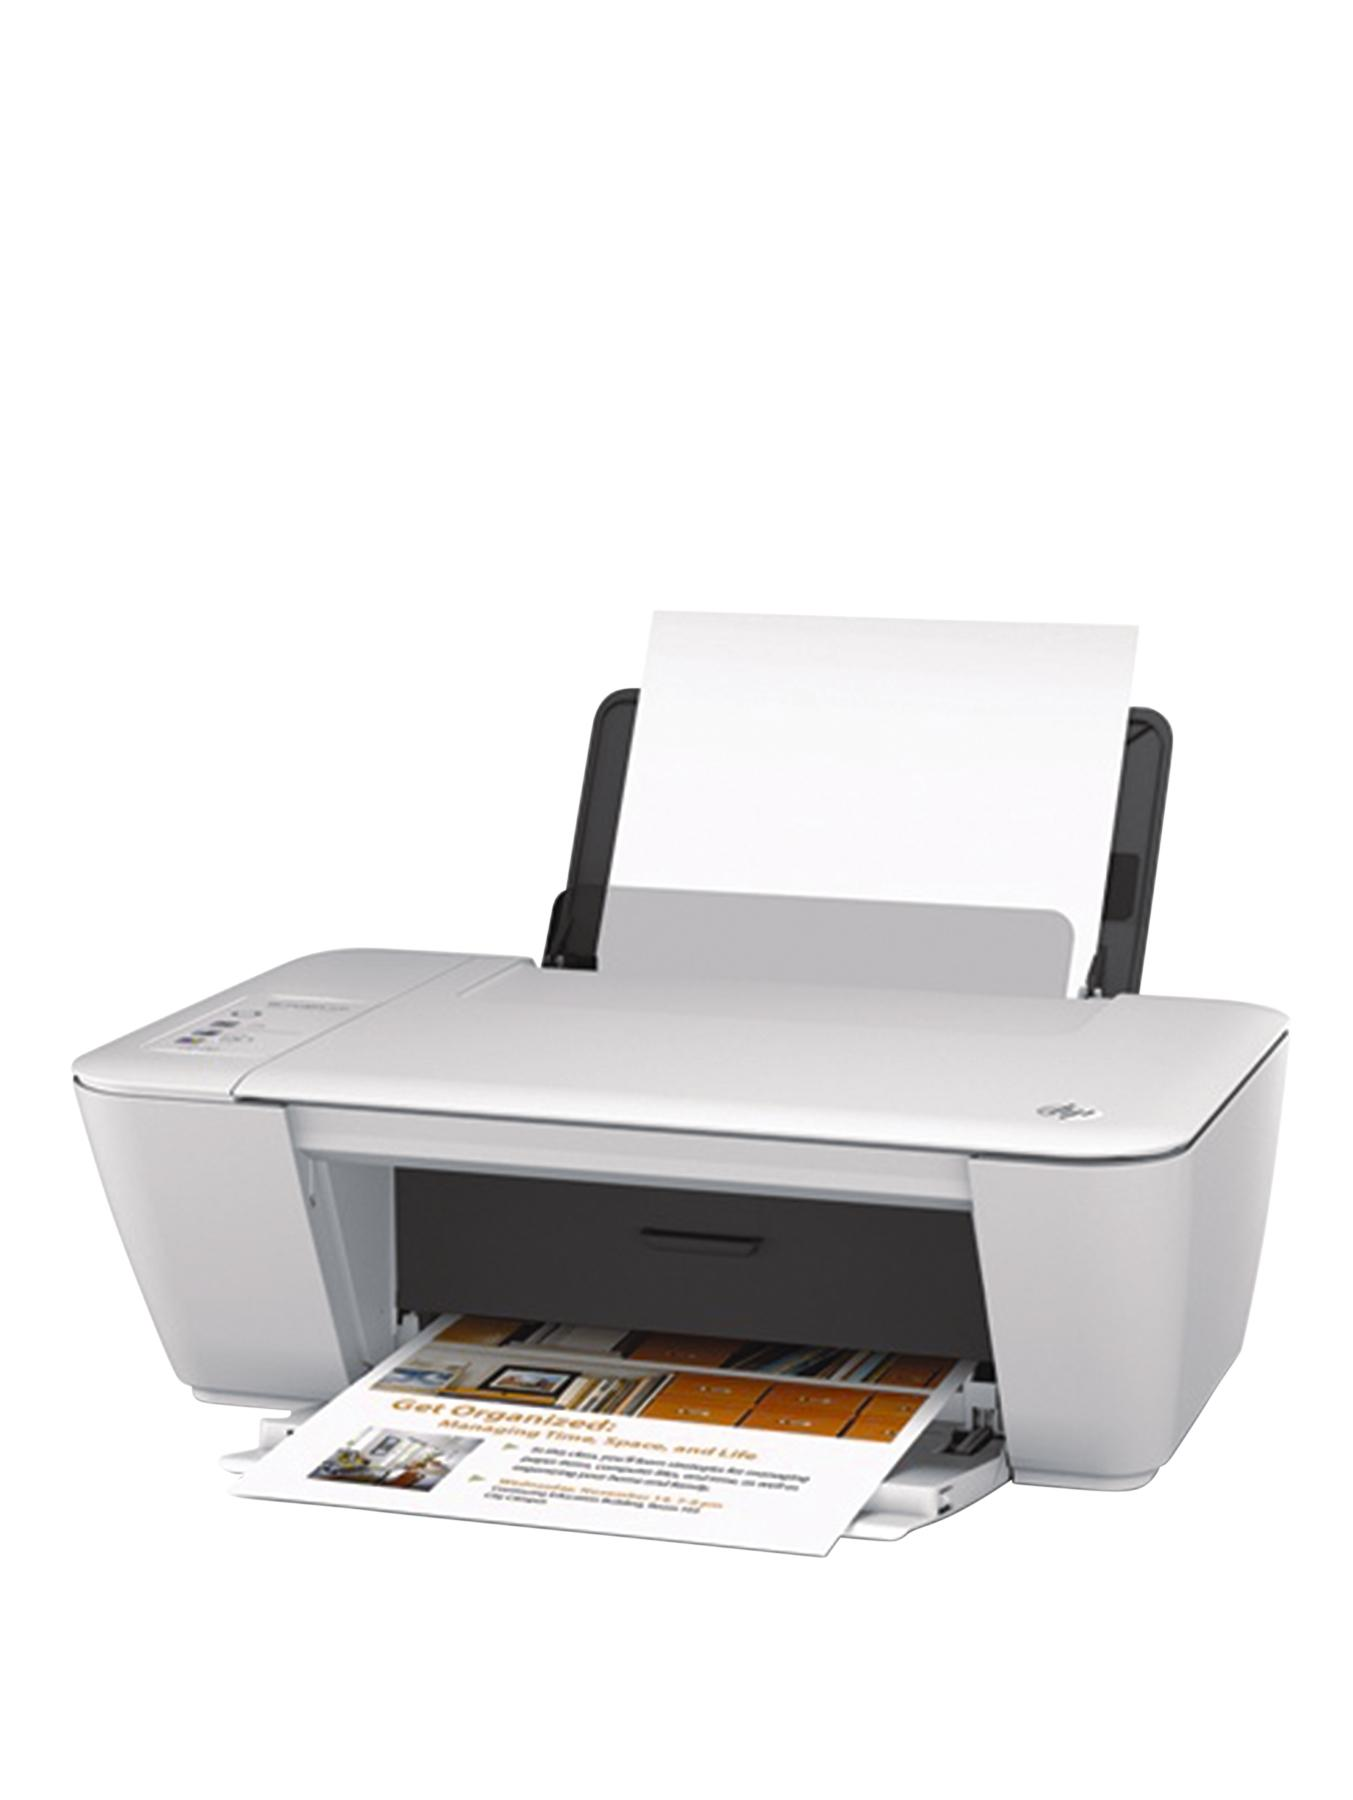 Deskjet 1510 All-in-One Printer